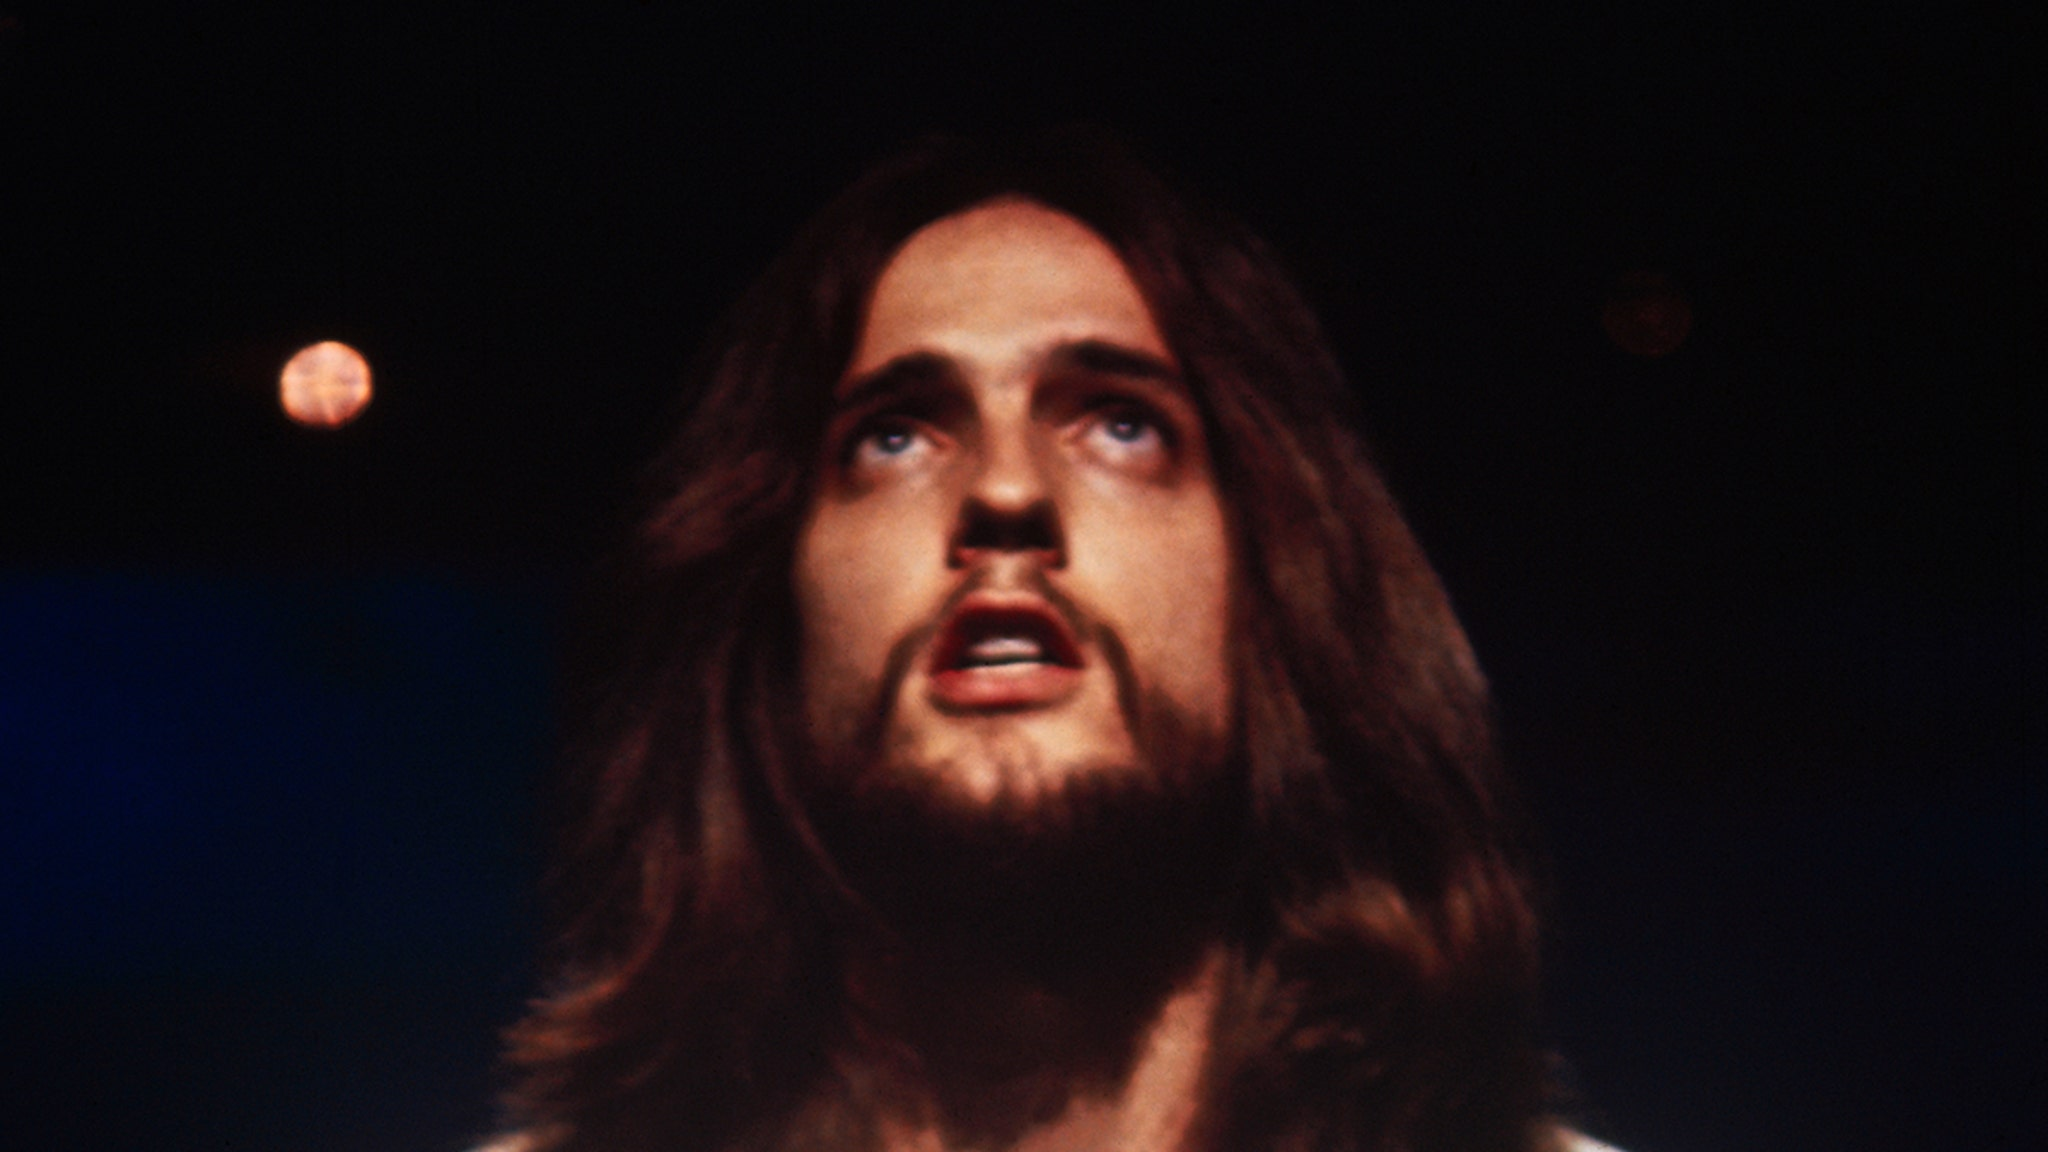 'Jesus Christ Superstar' Star Jeff Fenholt Dead at 68